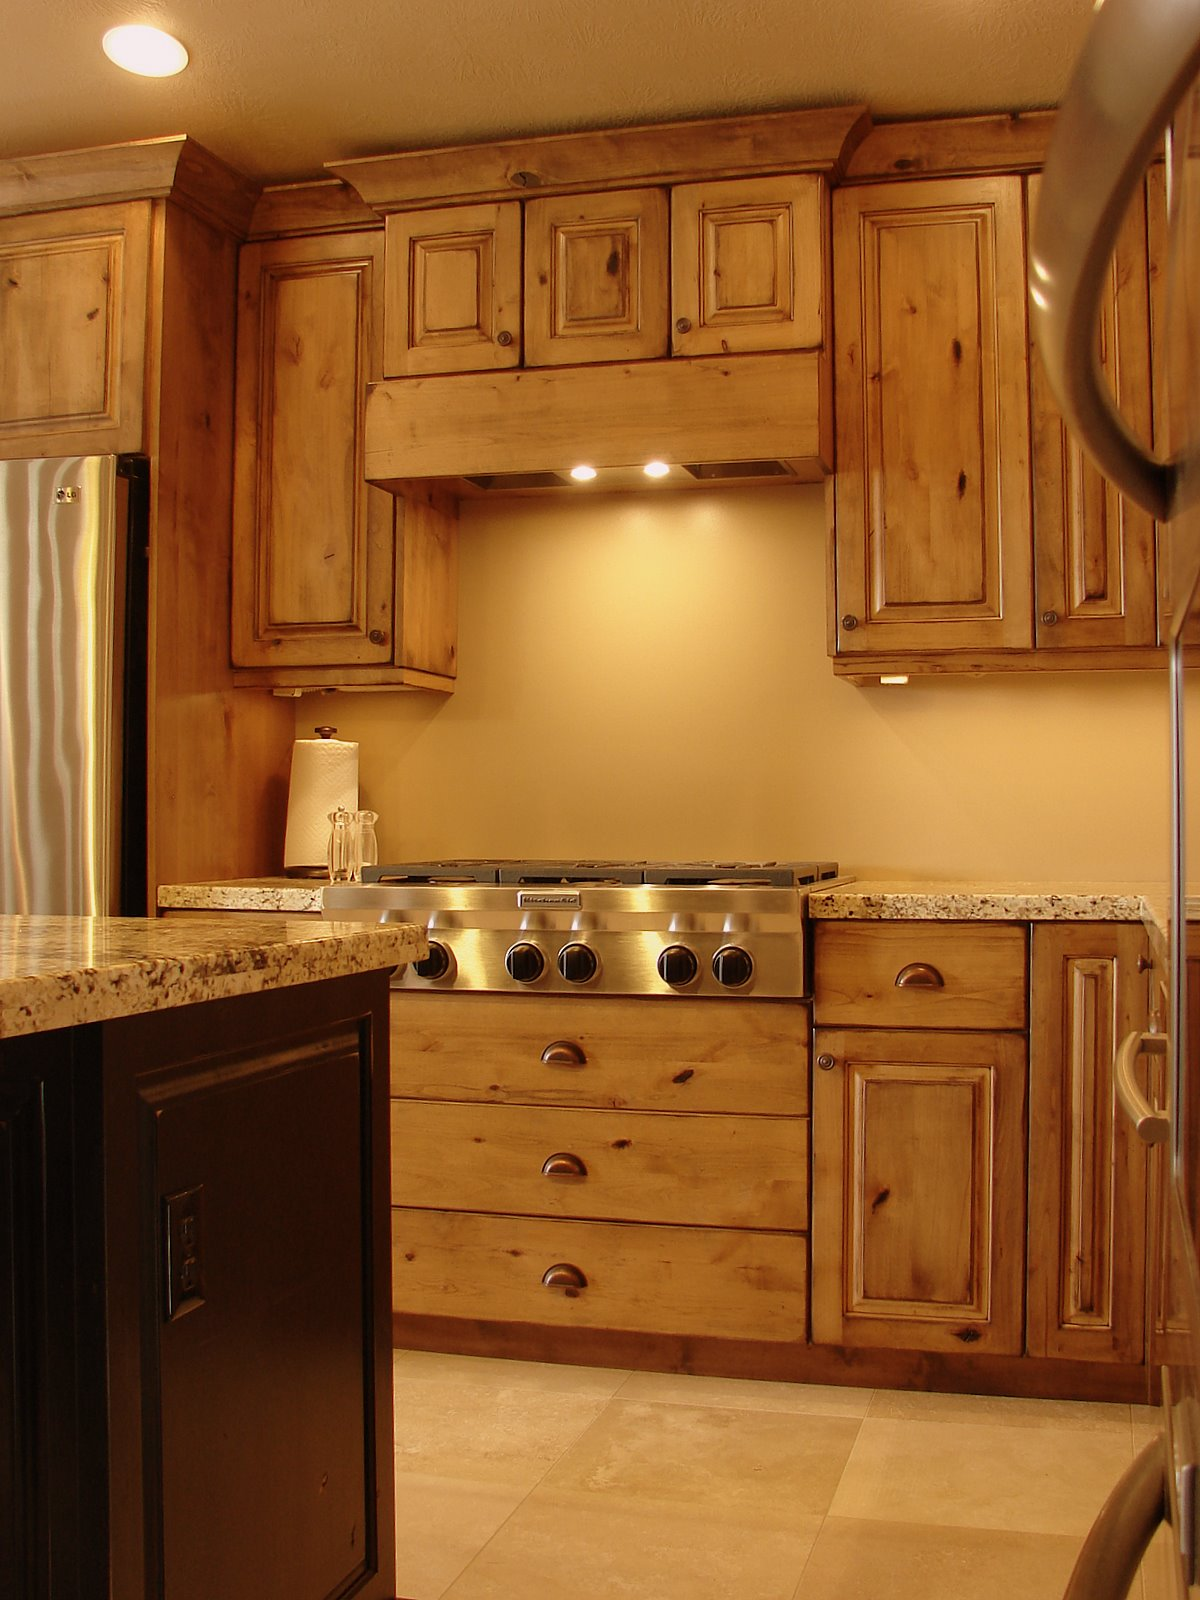 Lec cabinets rustic knotty alder cabinets for Rustic kitchen cabinets